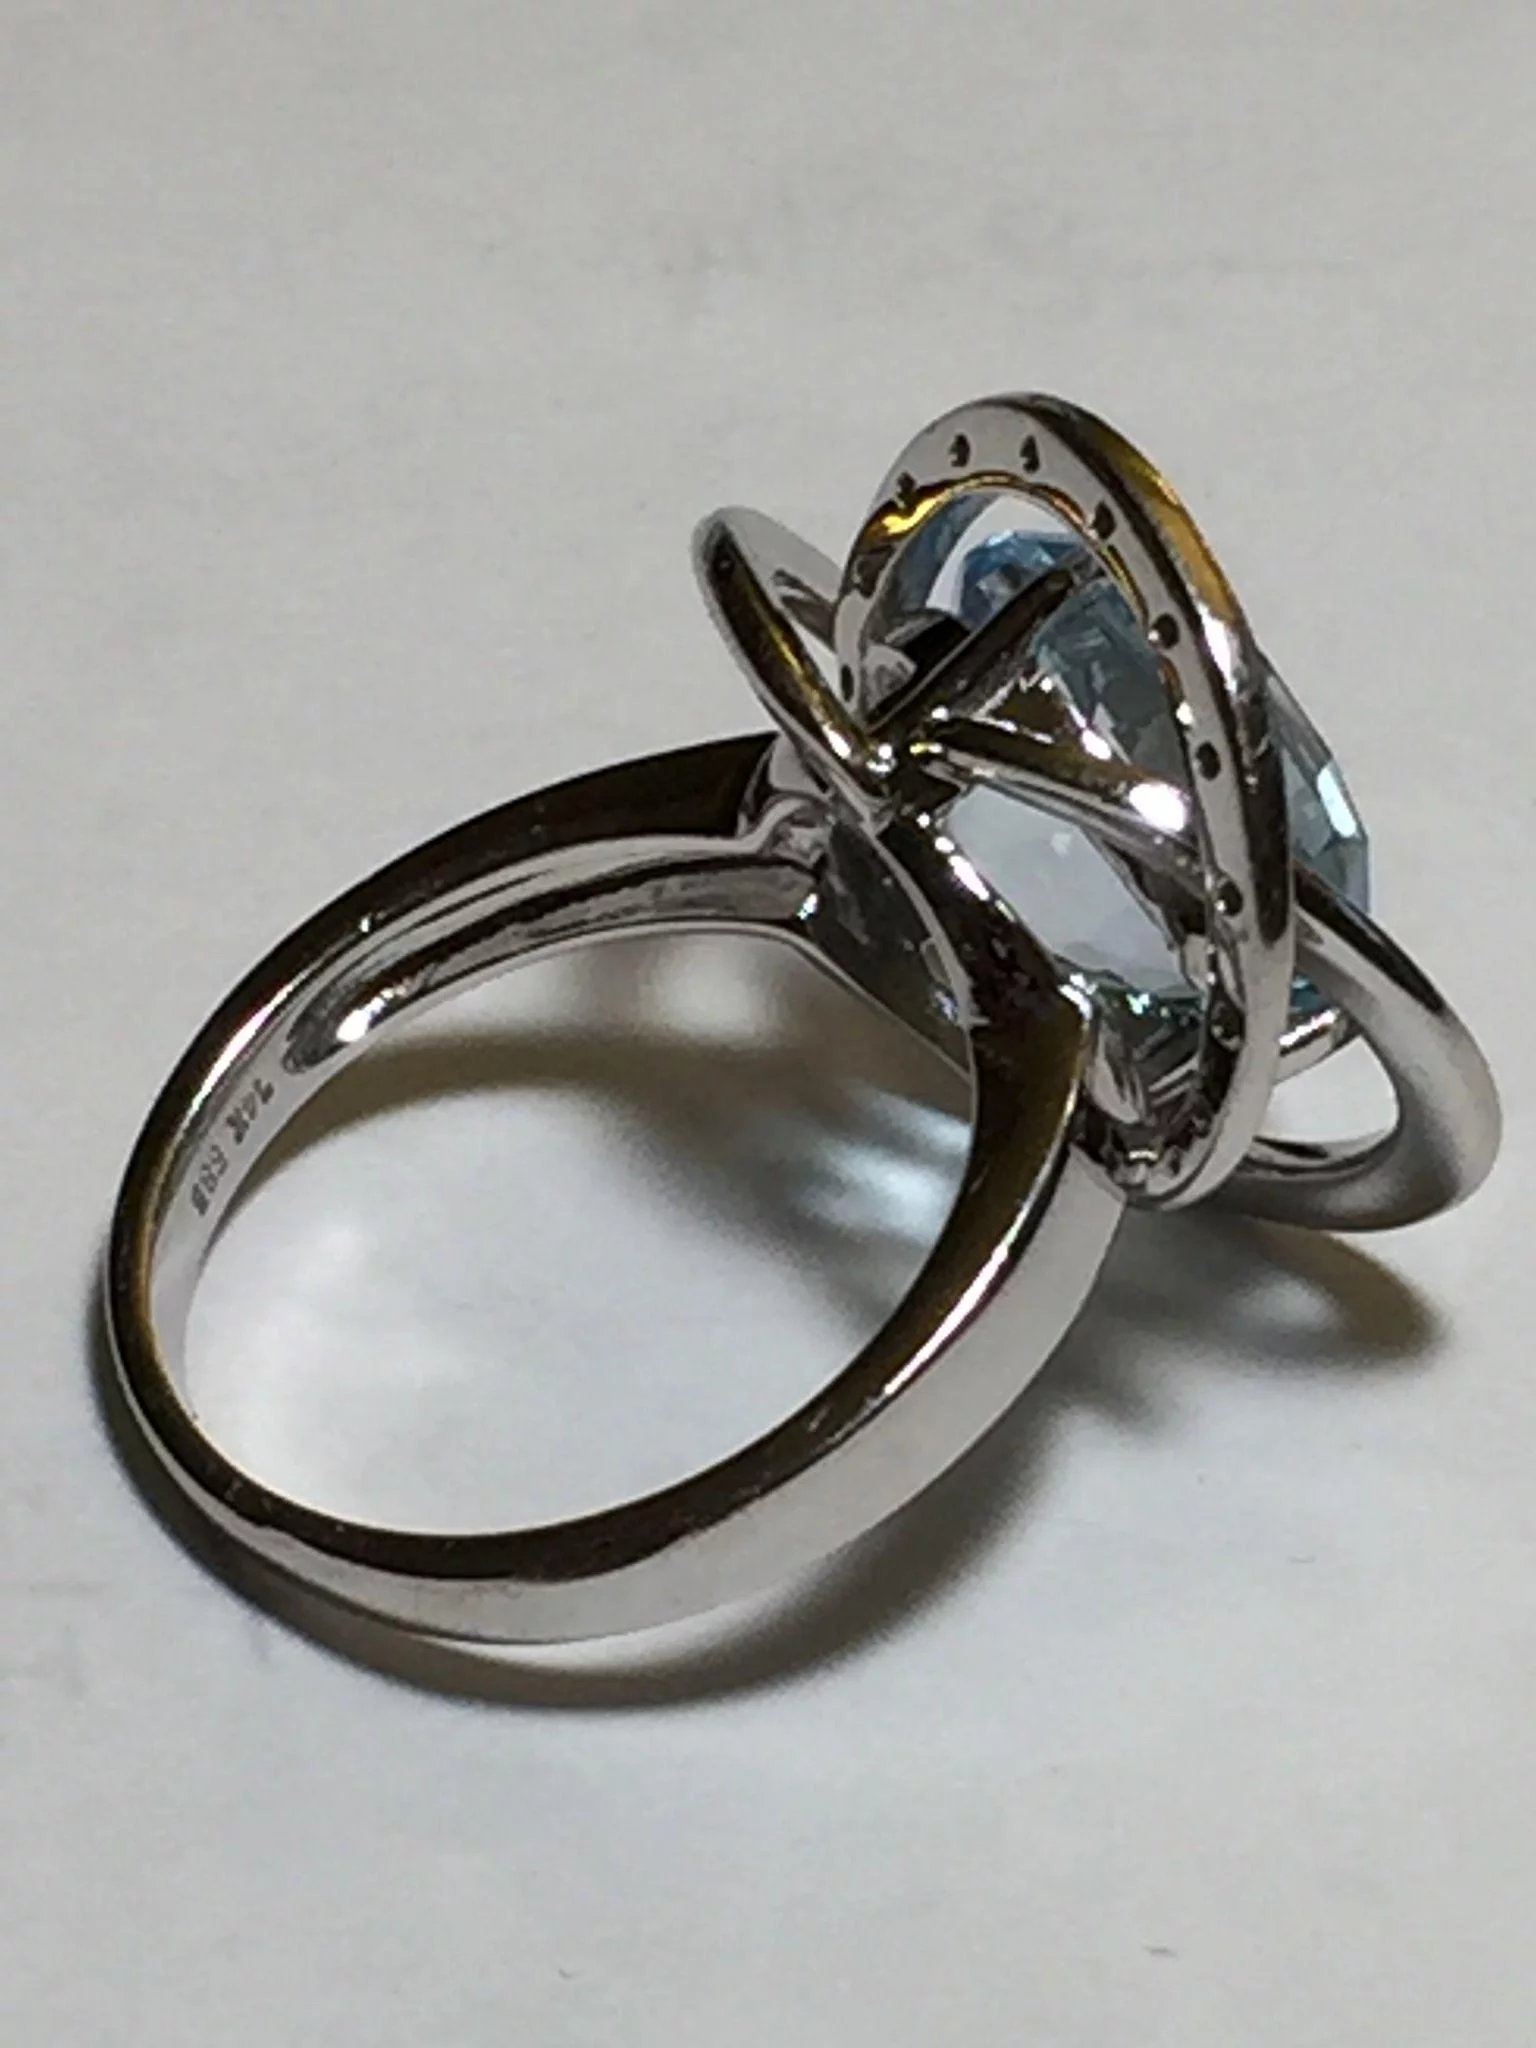 ring overstock sterling shipping free product tdw today watches infinity cambridge knot diamond silver jewelry love